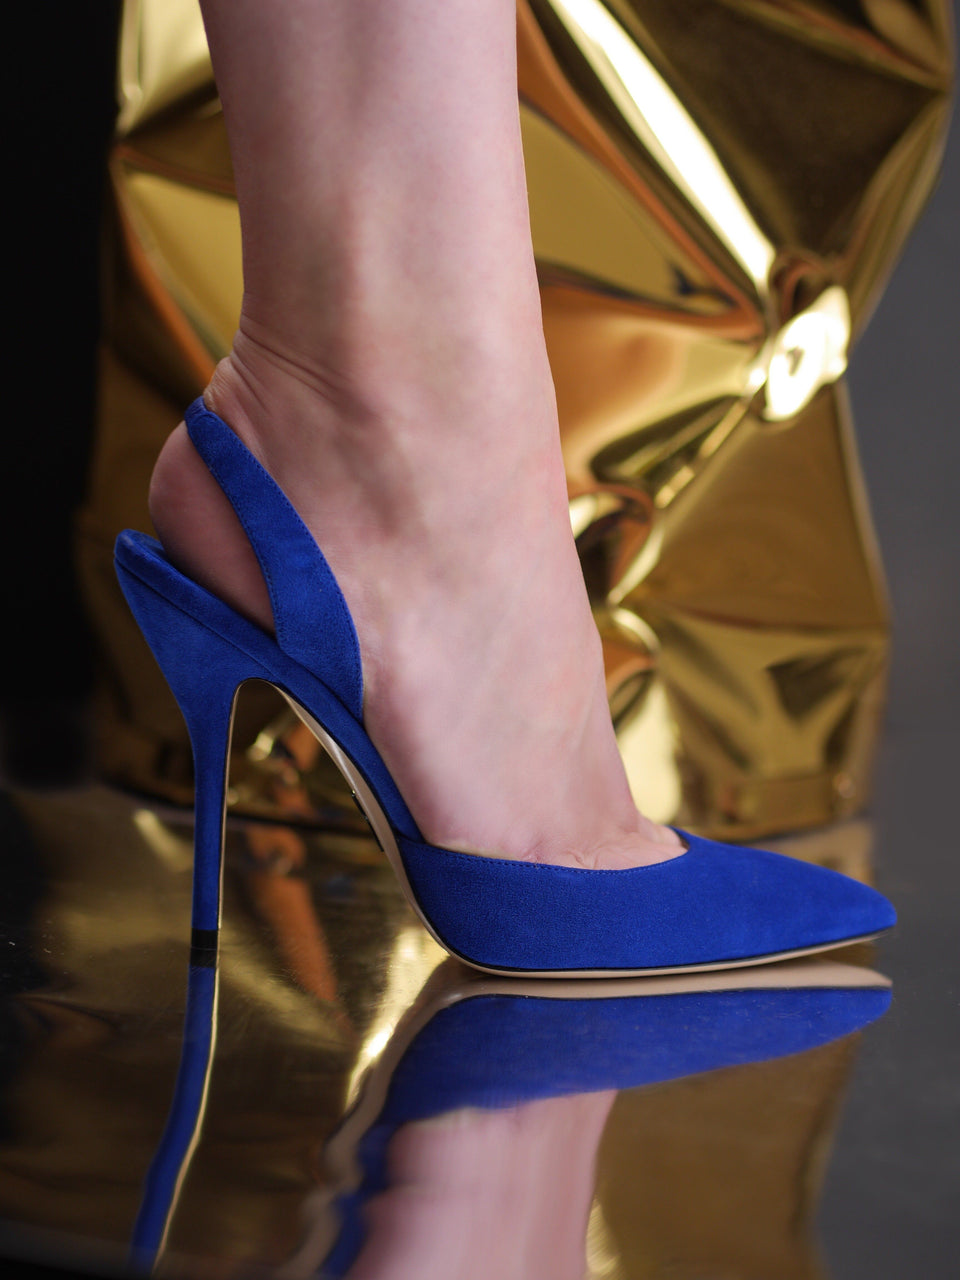 Passion: Suede Slingback Klein Blue Shoes Paul Andrew - der ZEITGEIST